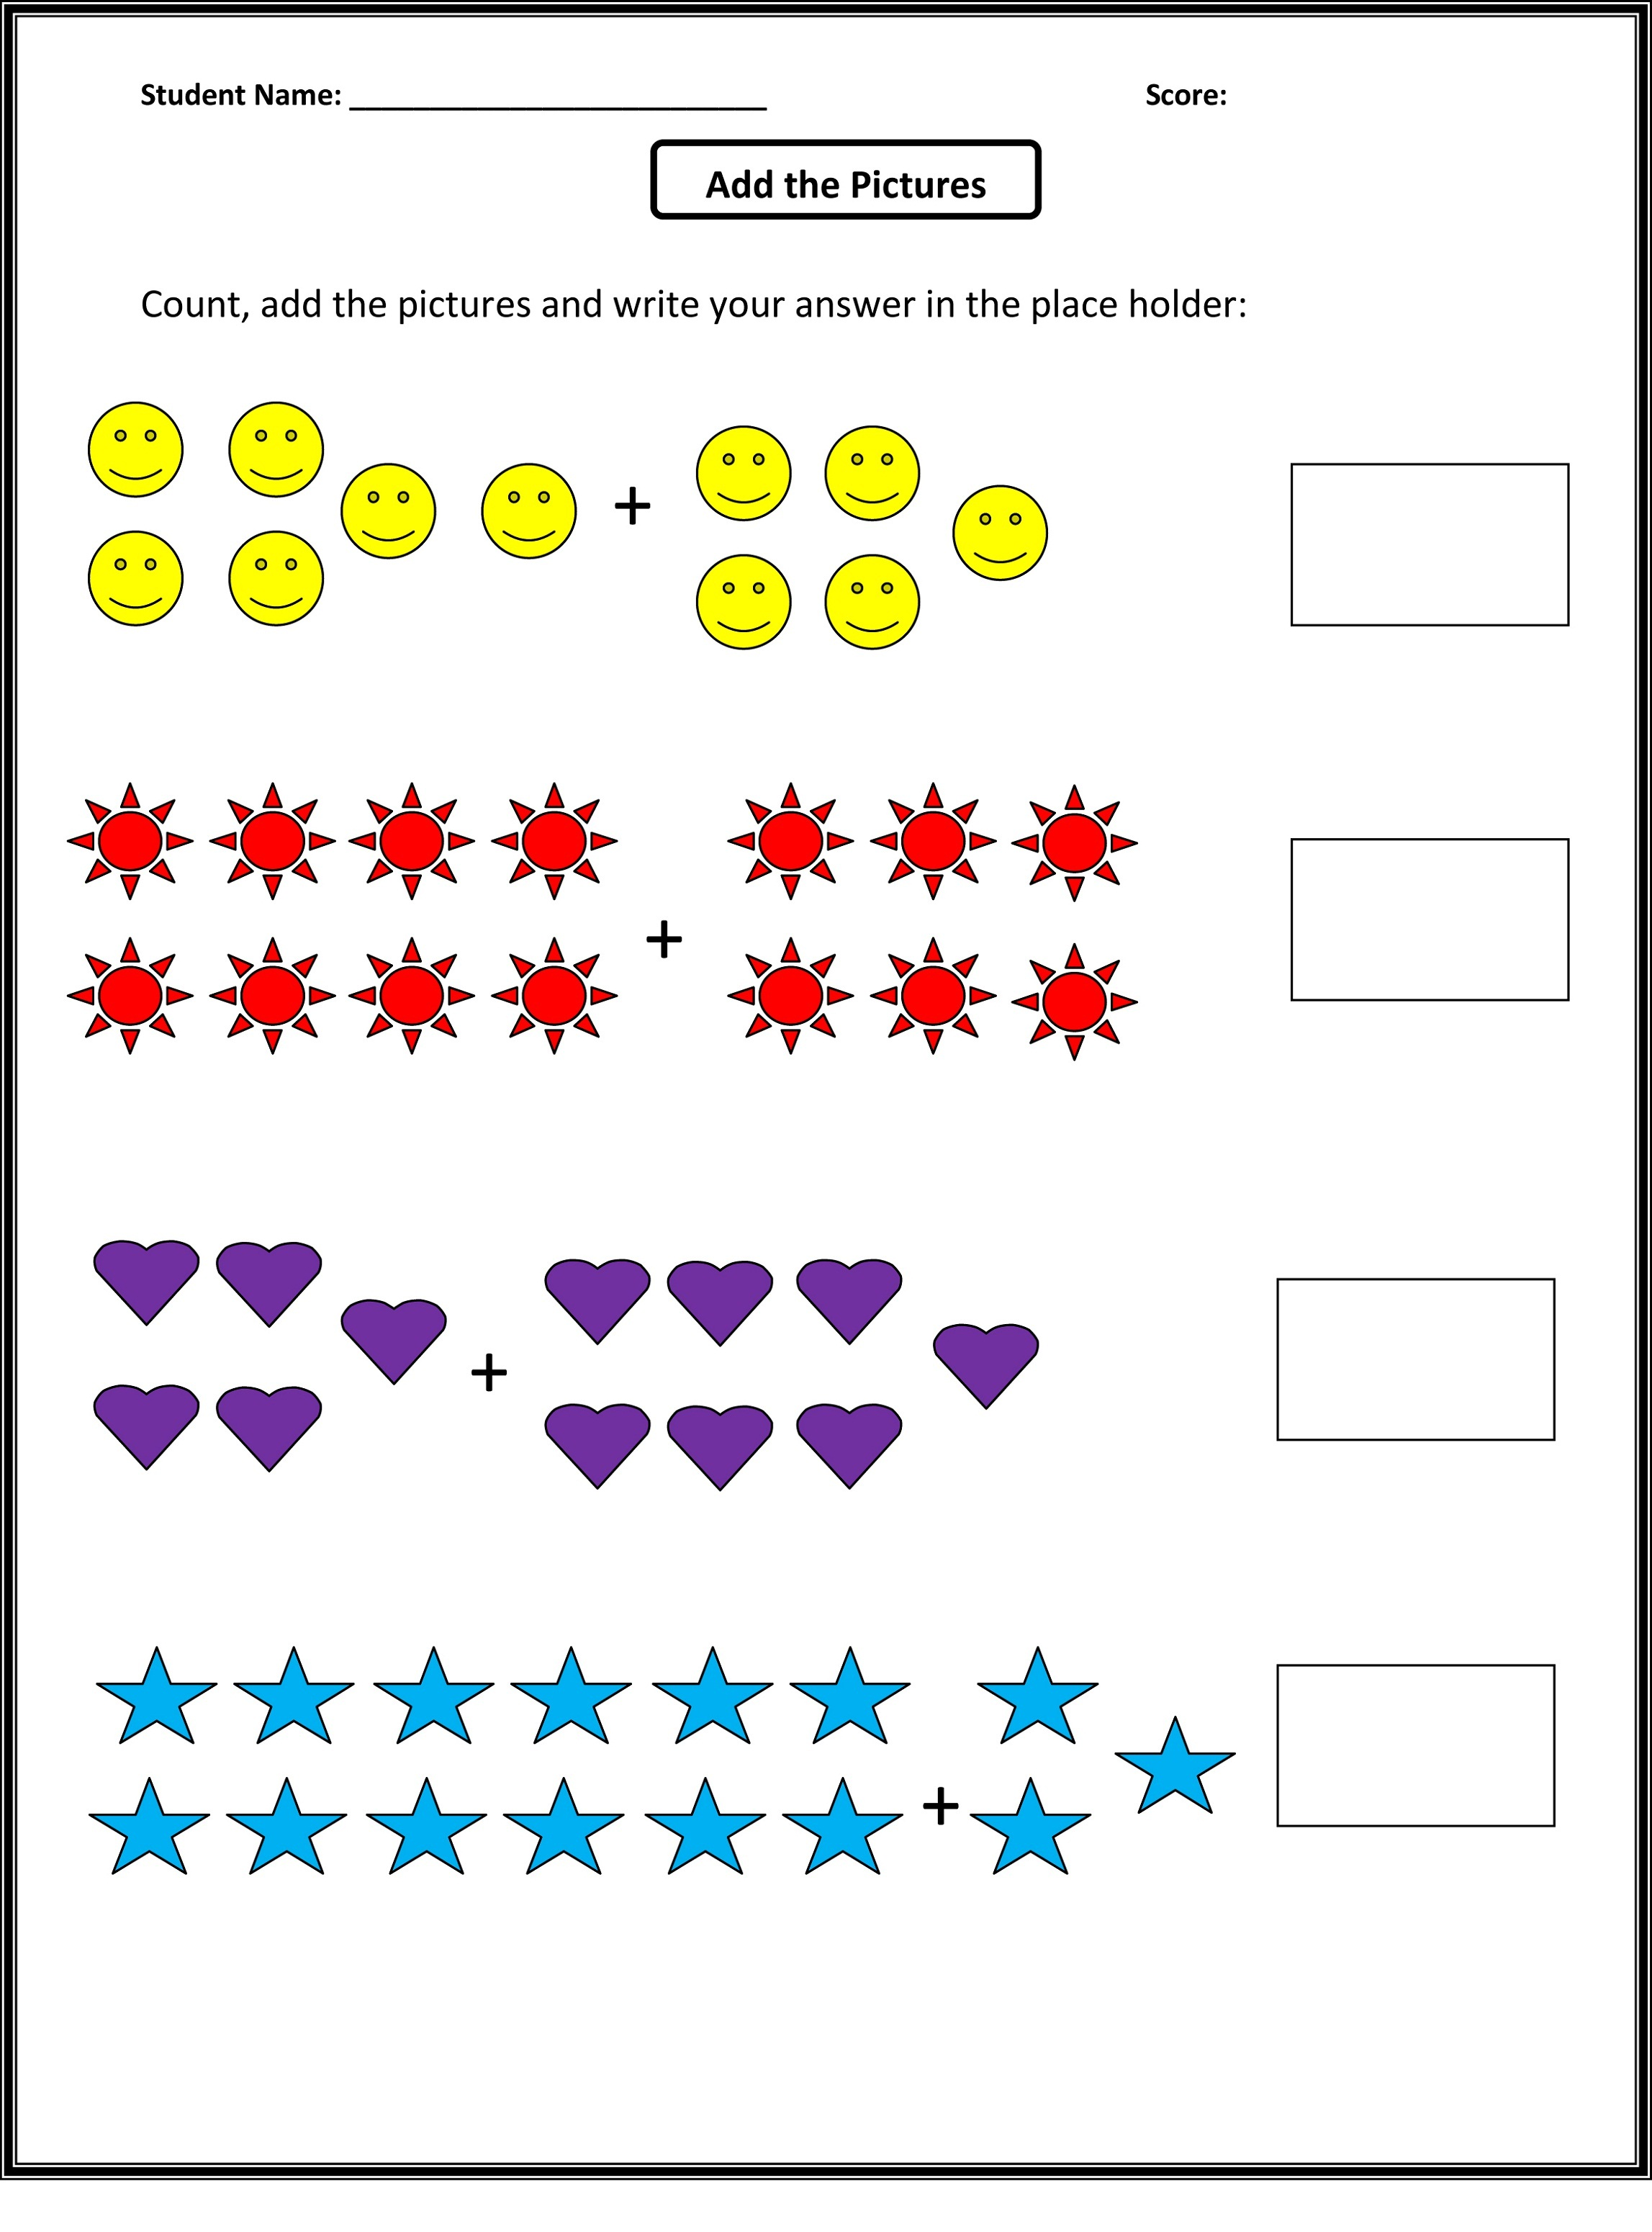 free-math-worksheets-for-1st-grade-1.j